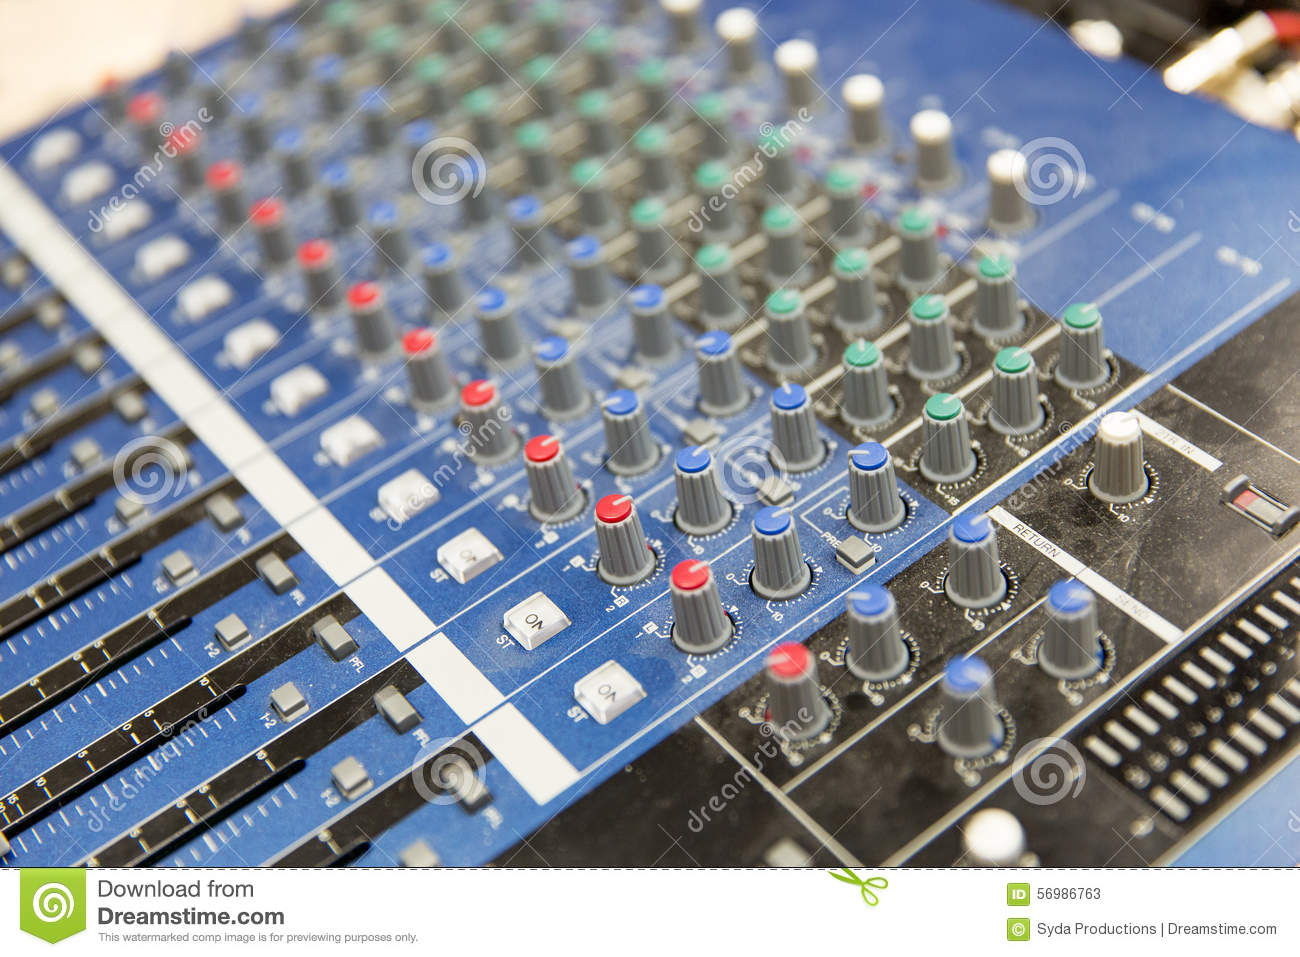 Tractor Technology Panel : Control panel at recording studio or radio station stock